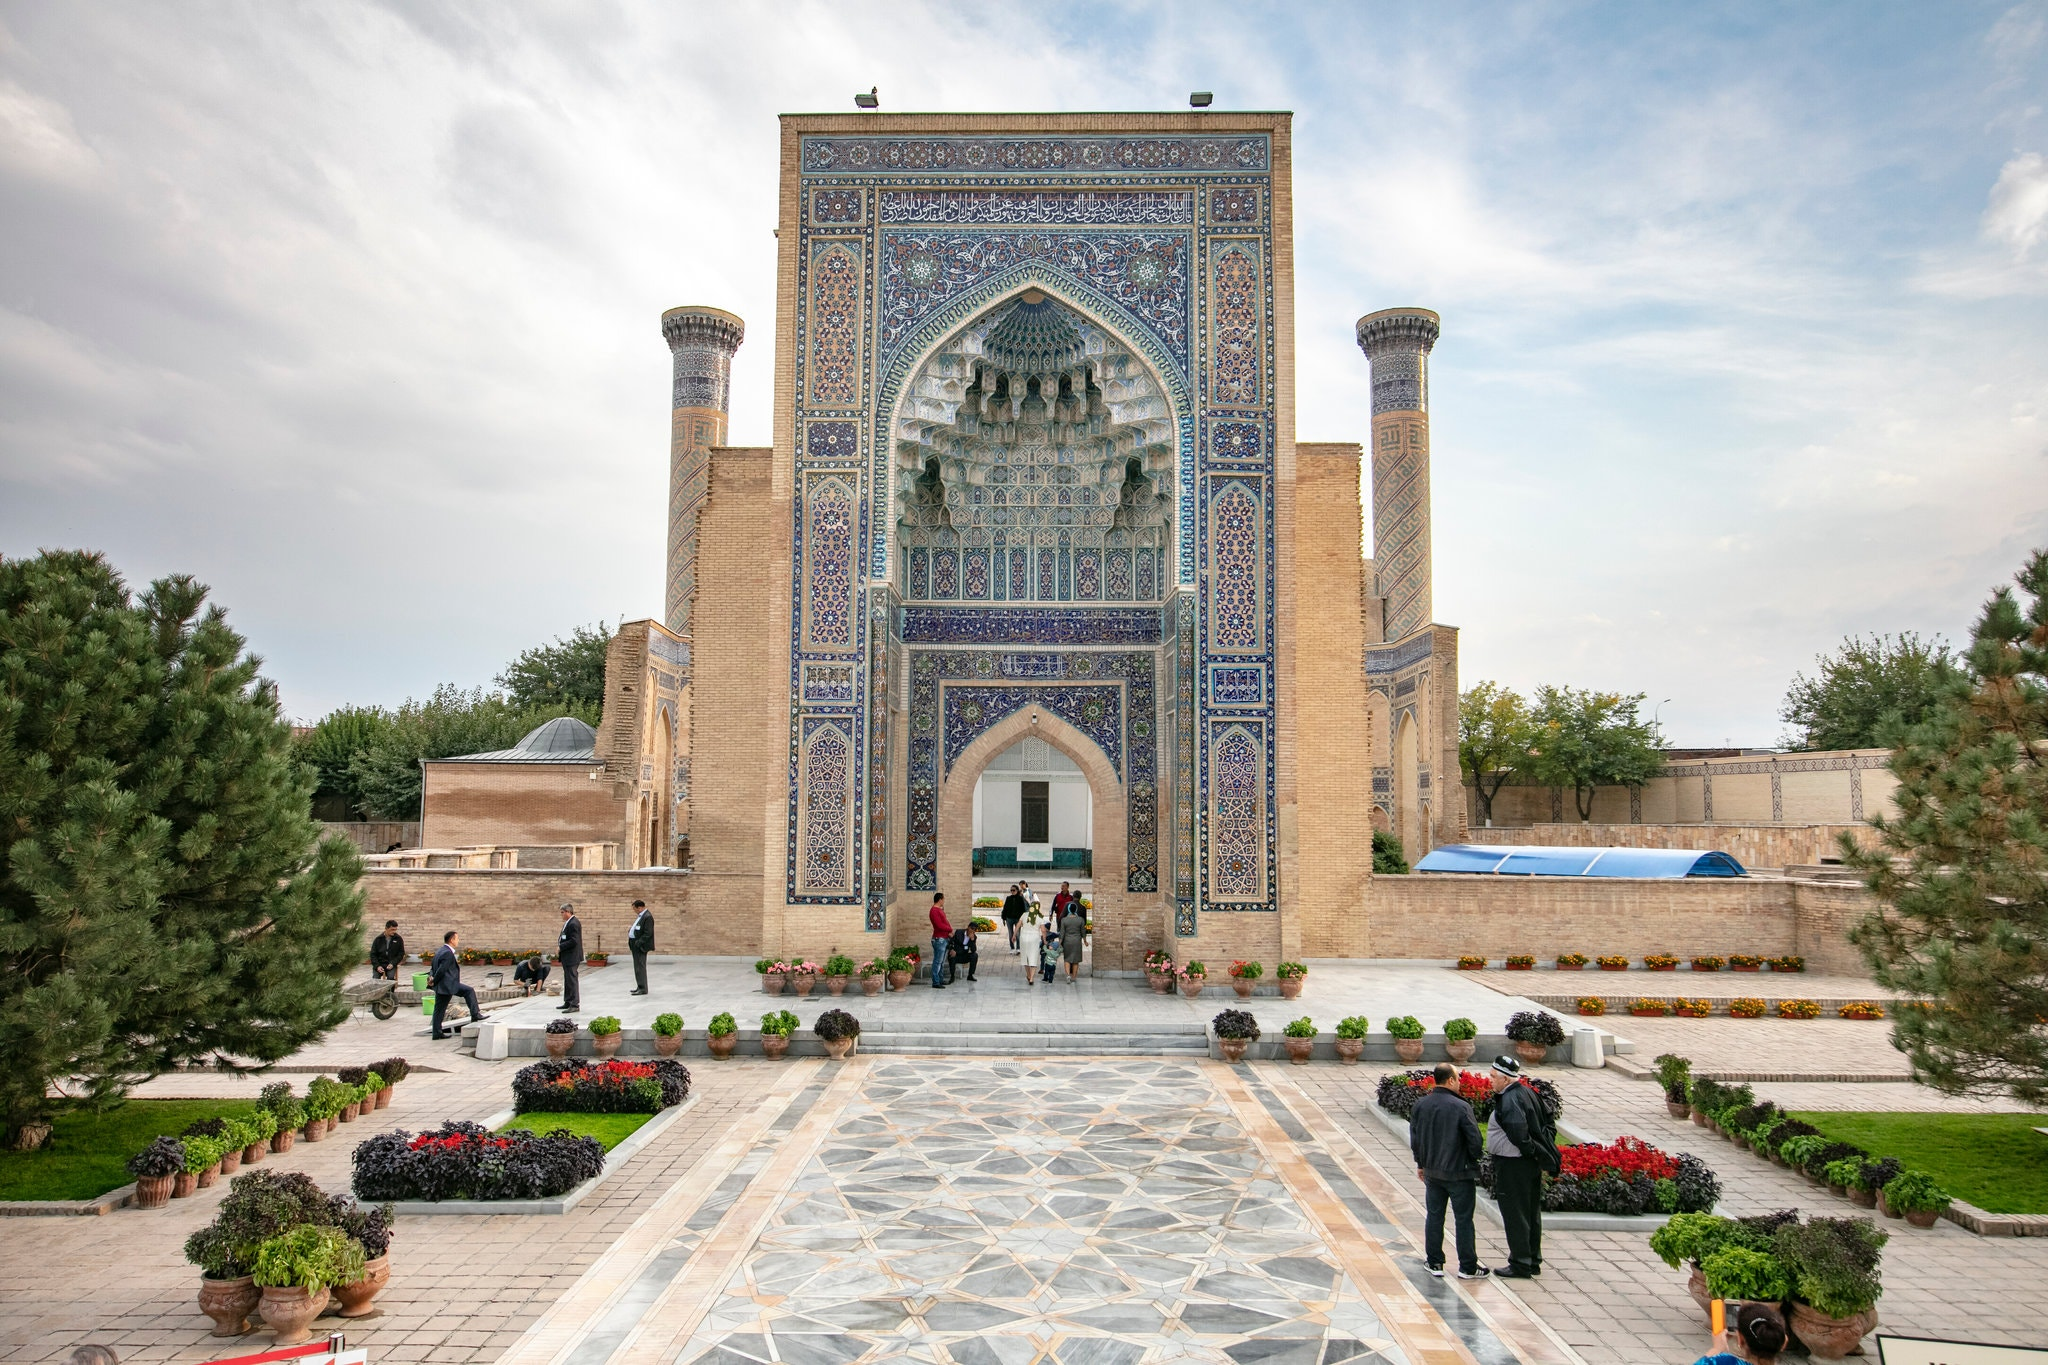 Mausoleum of Guri Emir